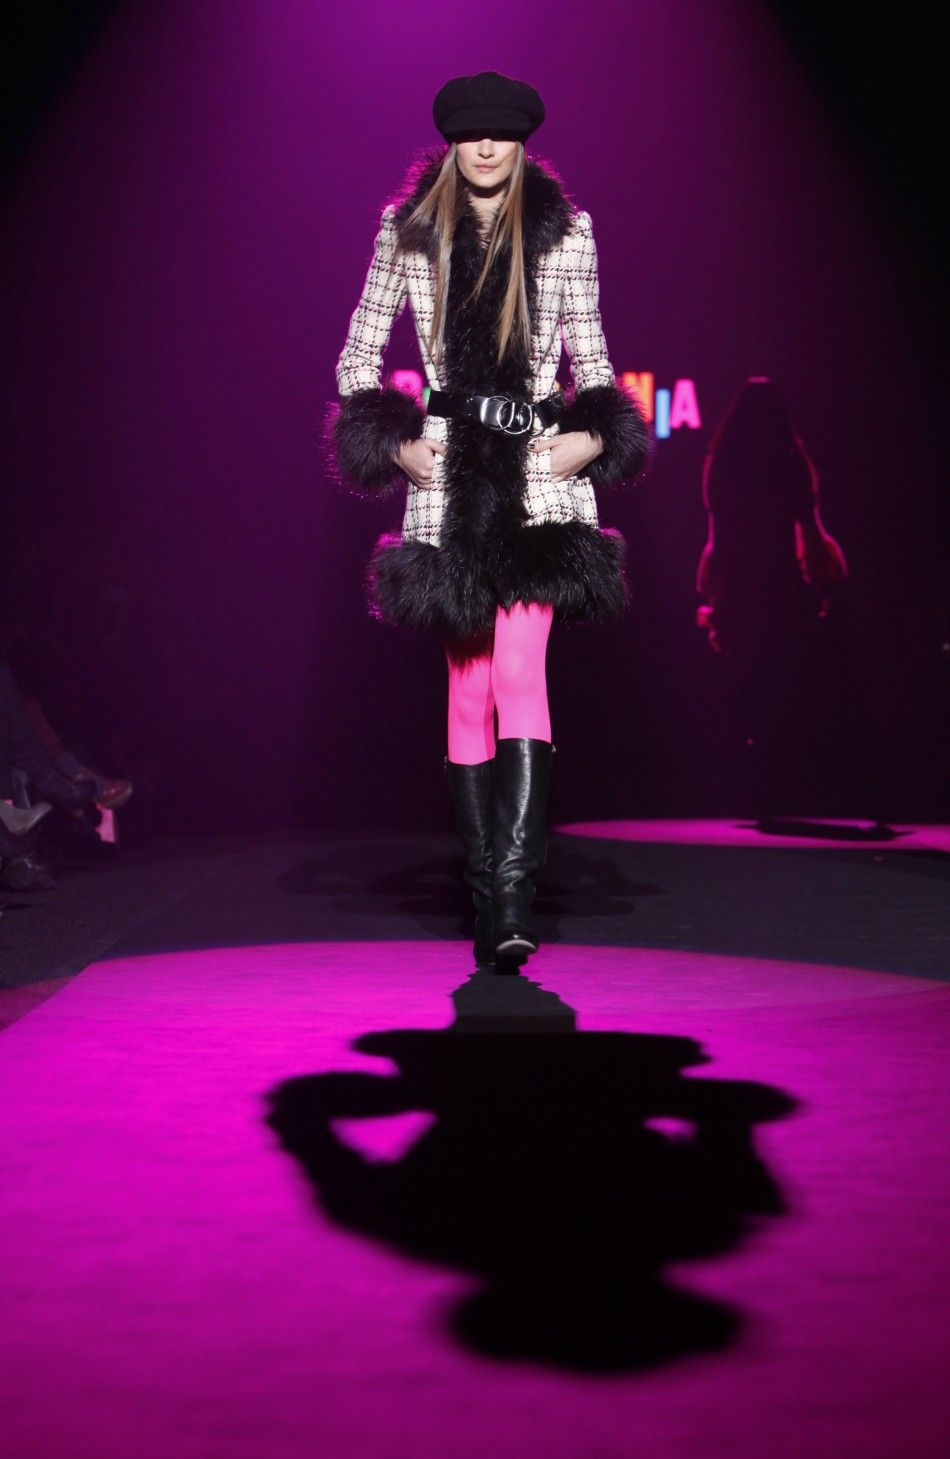 I love how the pink tights brighten up the outfit. ^AS